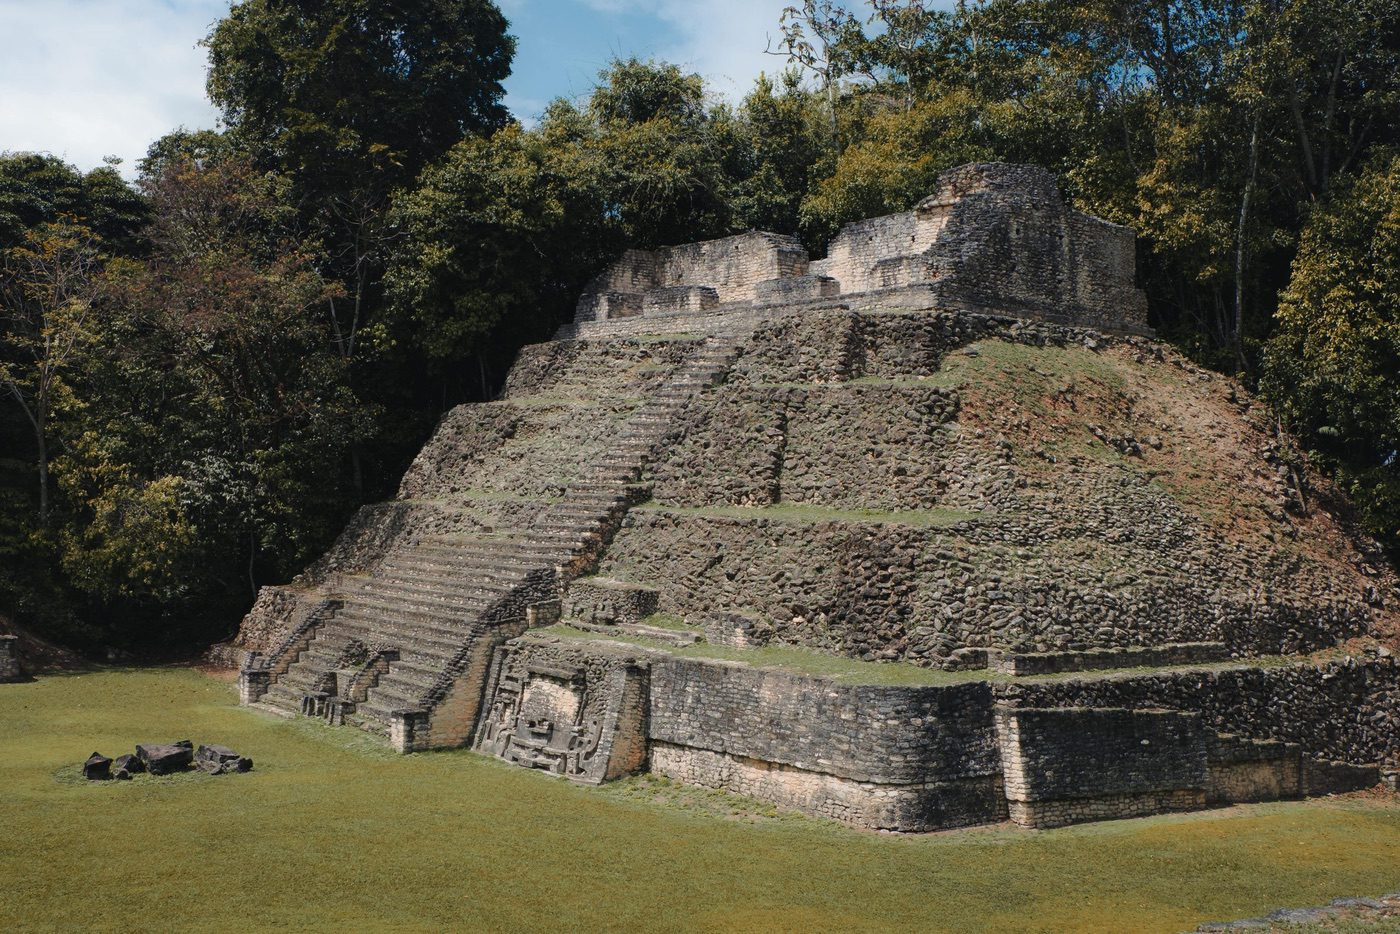 Pyramids of Caracol in Belize